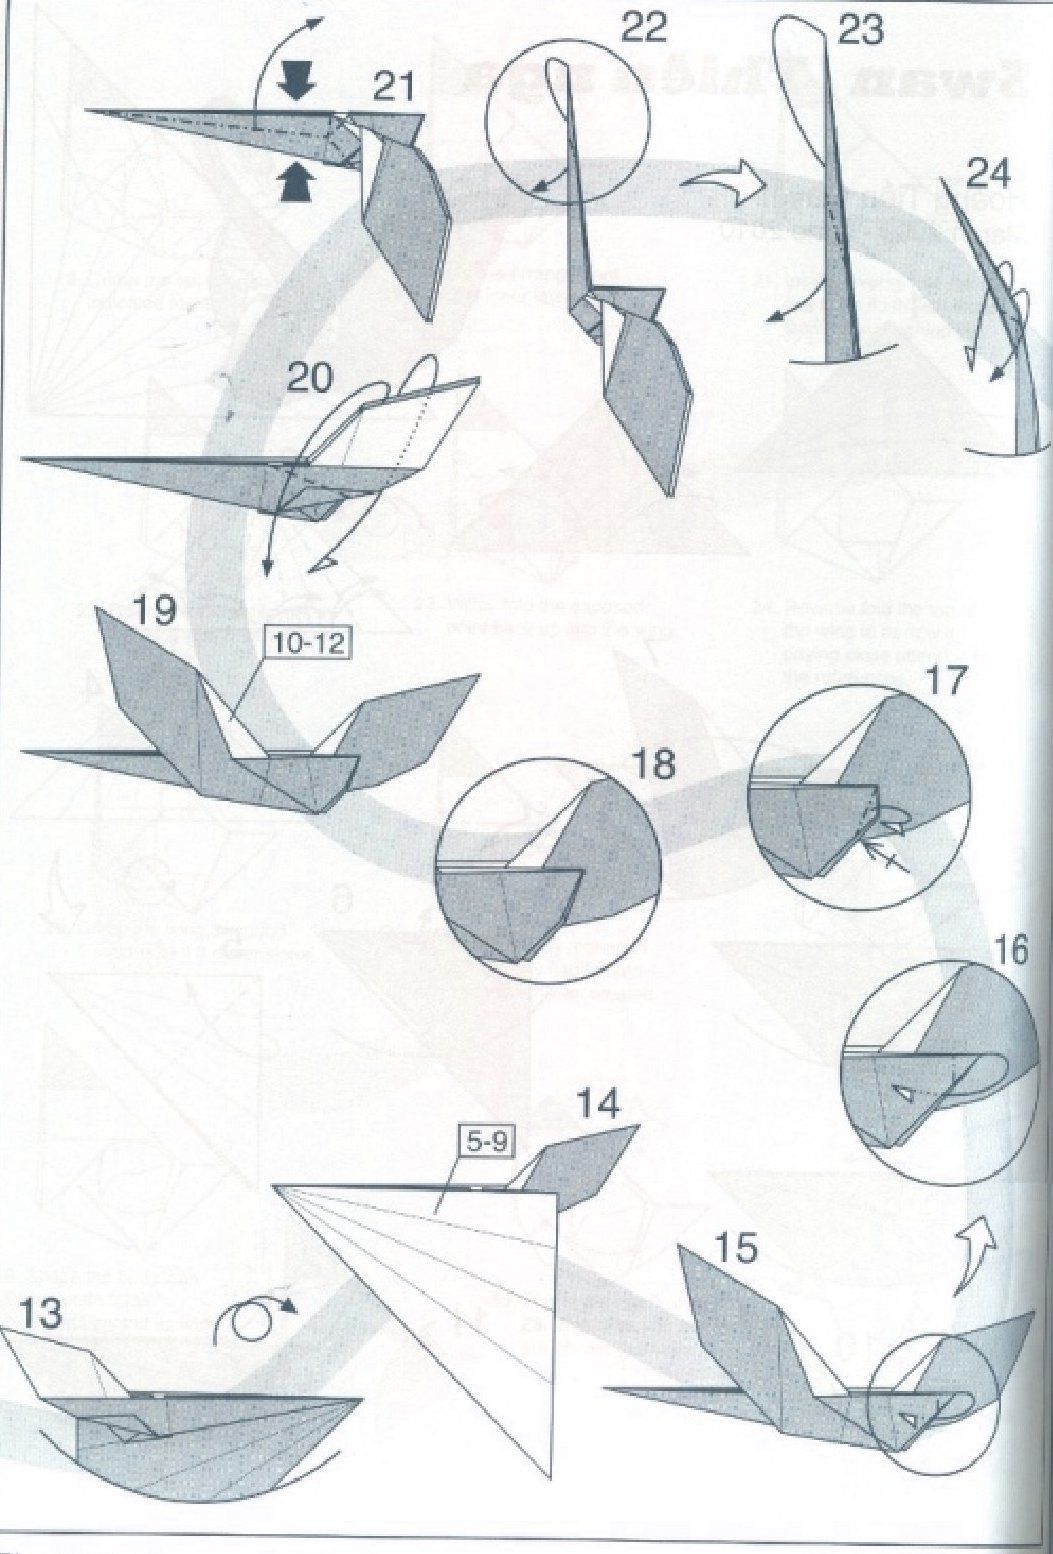 Origami Complex Diagrams Online Schematic Diagram